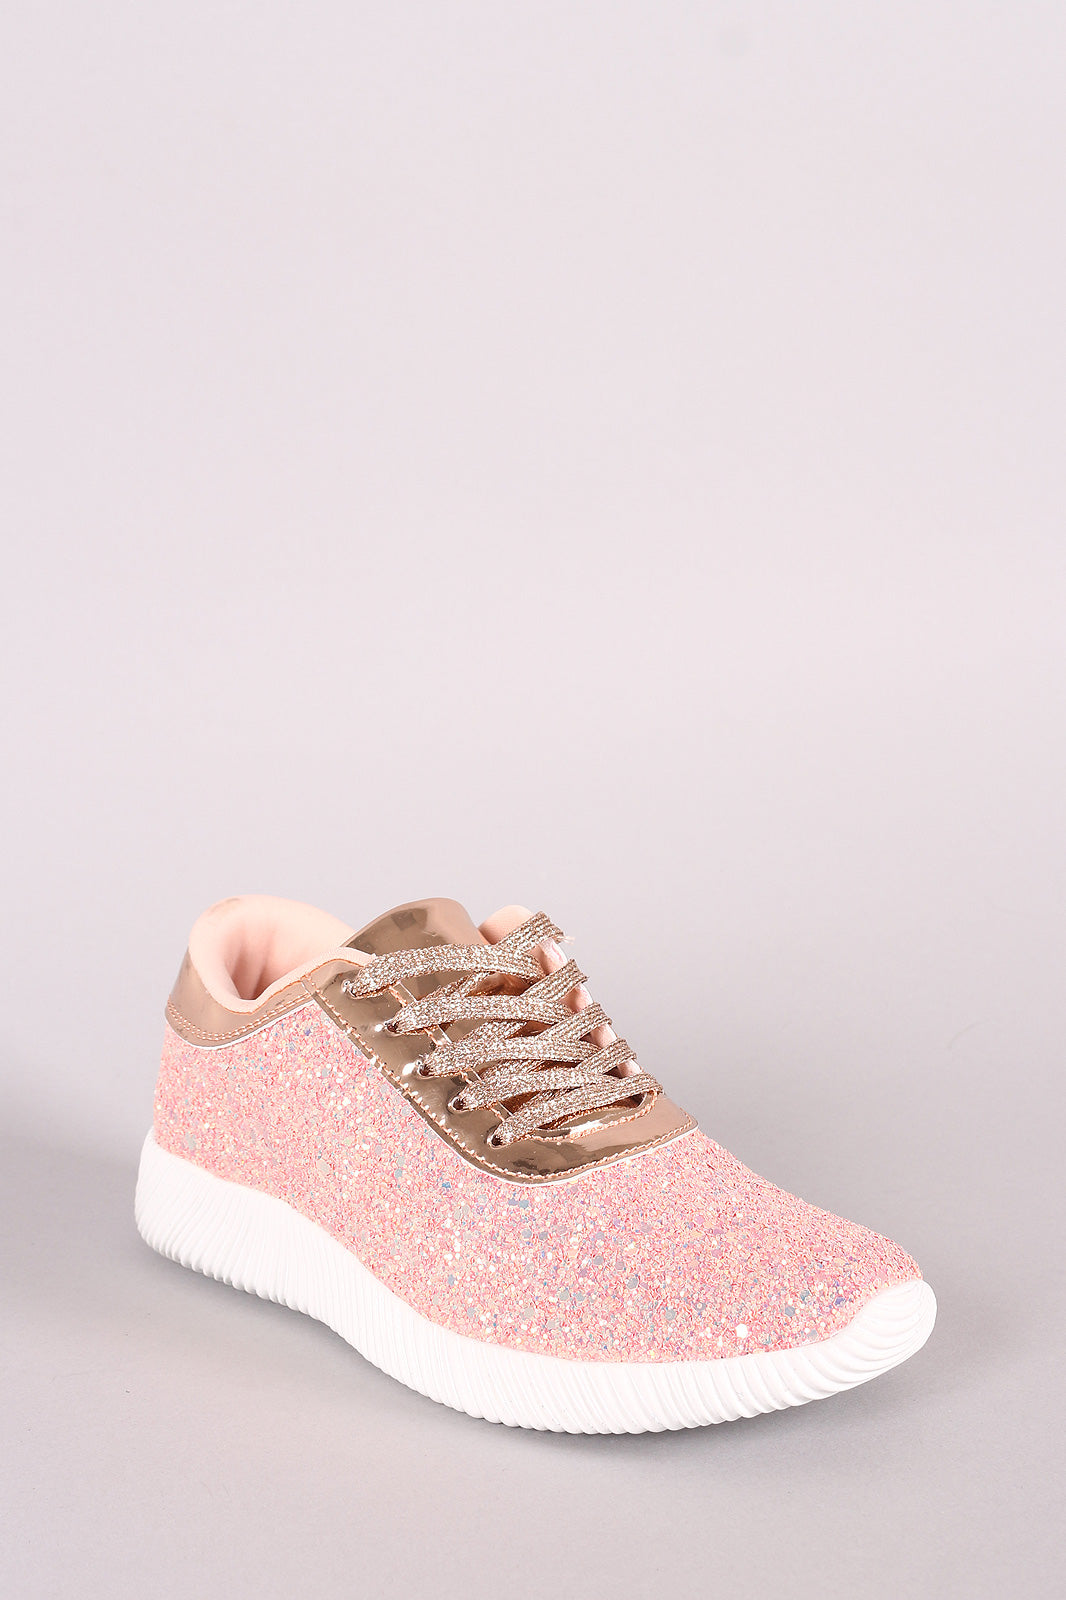 Ridge Sole Lace Up Sneakers - Madiani Boutique